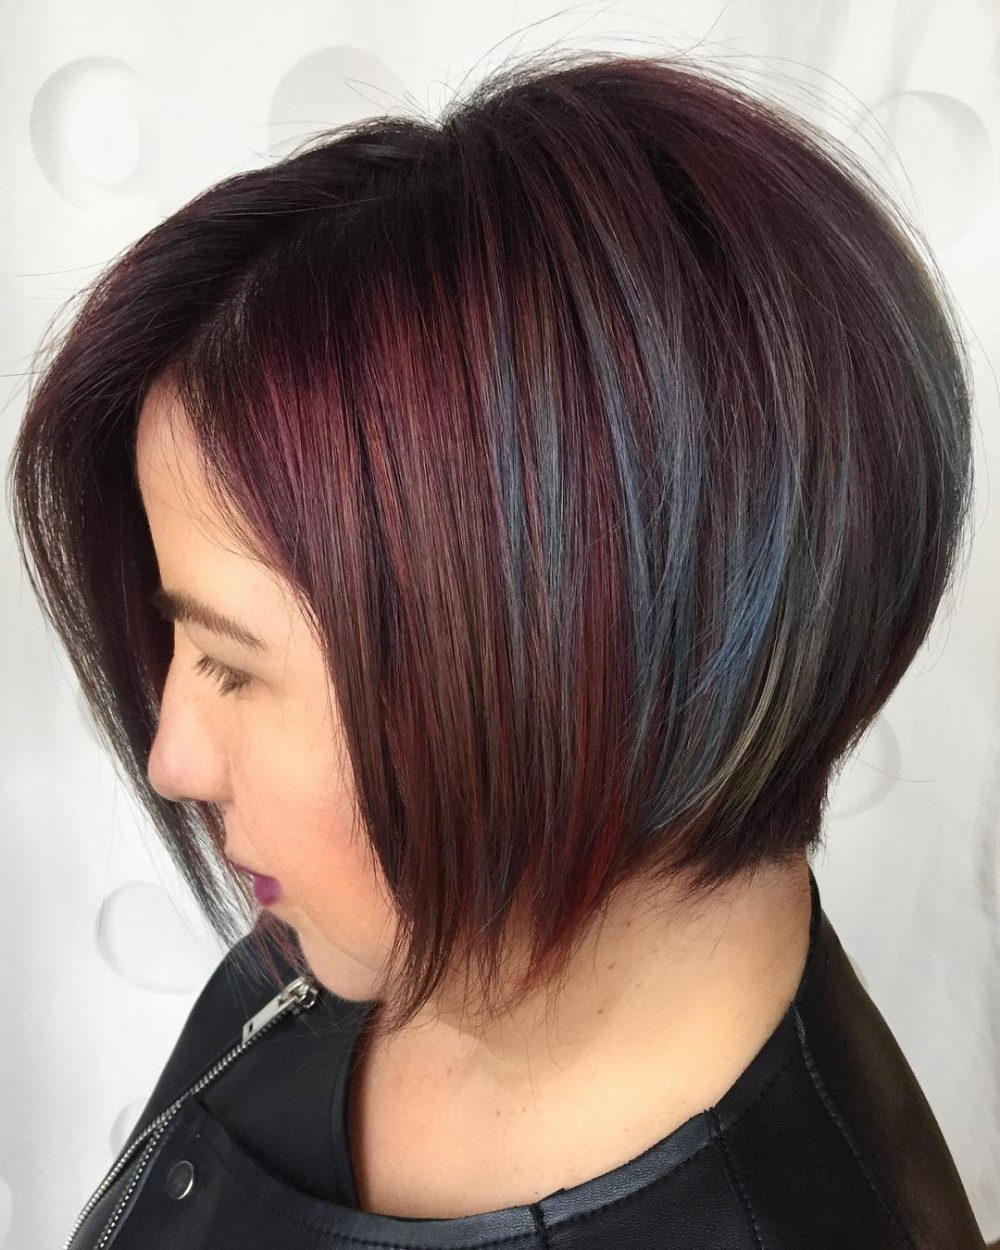 34 Greatest Short Haircuts And Hairstyles For Thick Hair For 2018 With Regard To Black Hairstyles Short Haircuts (View 14 of 25)